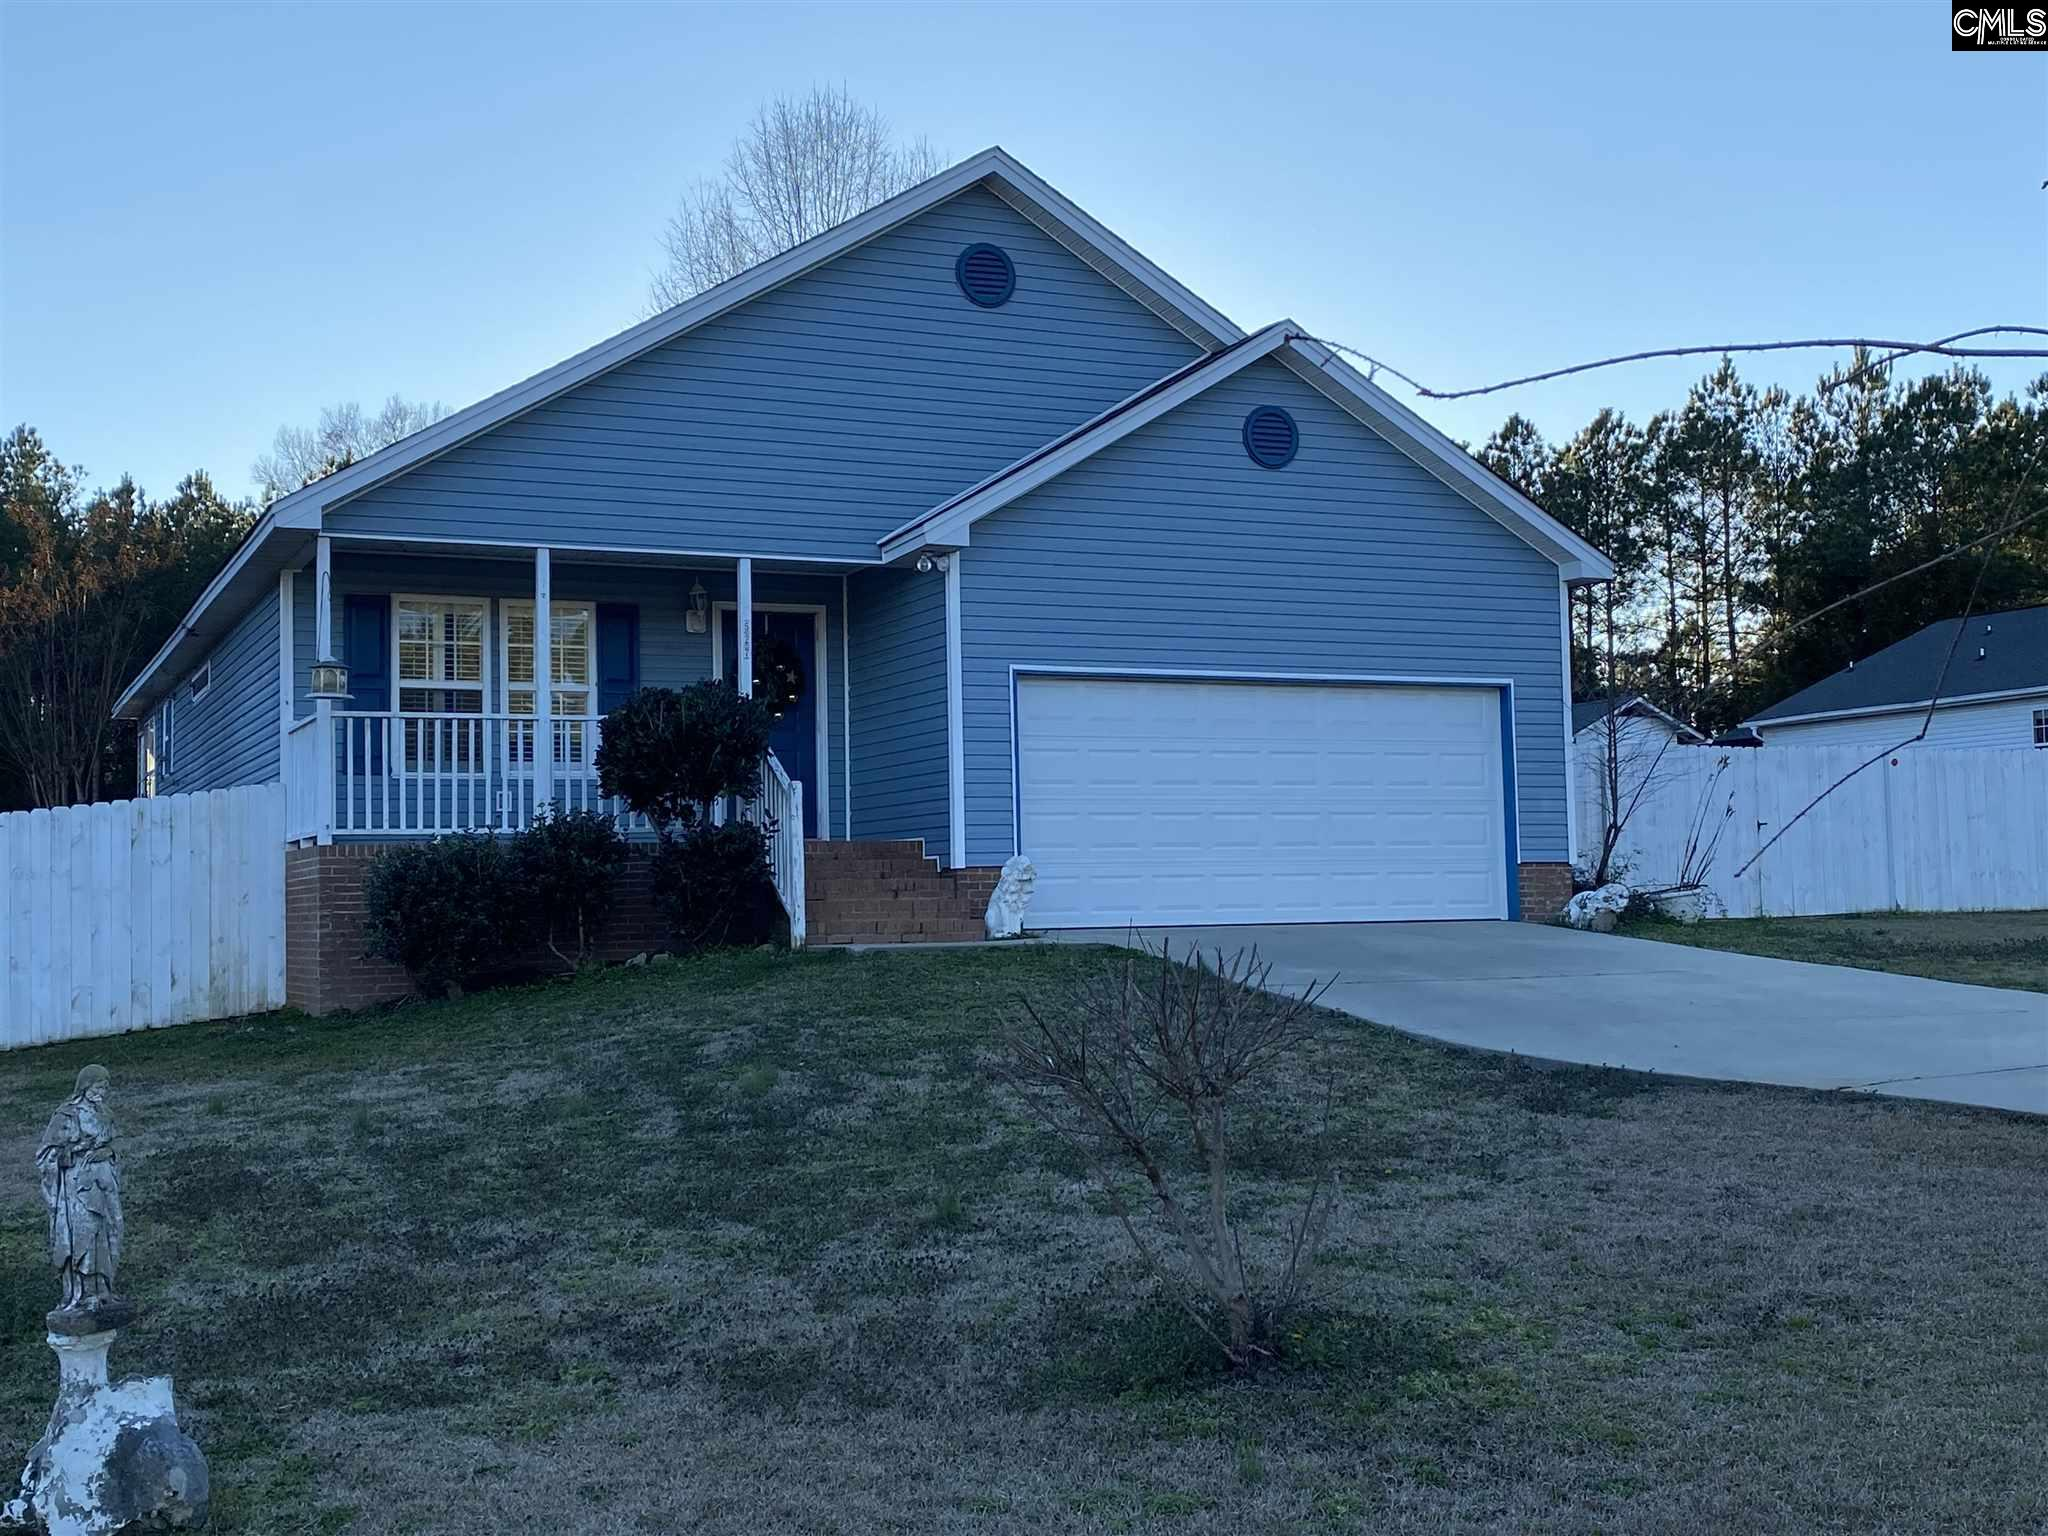 527 Old Bush River Rd Chapin, SC 29036